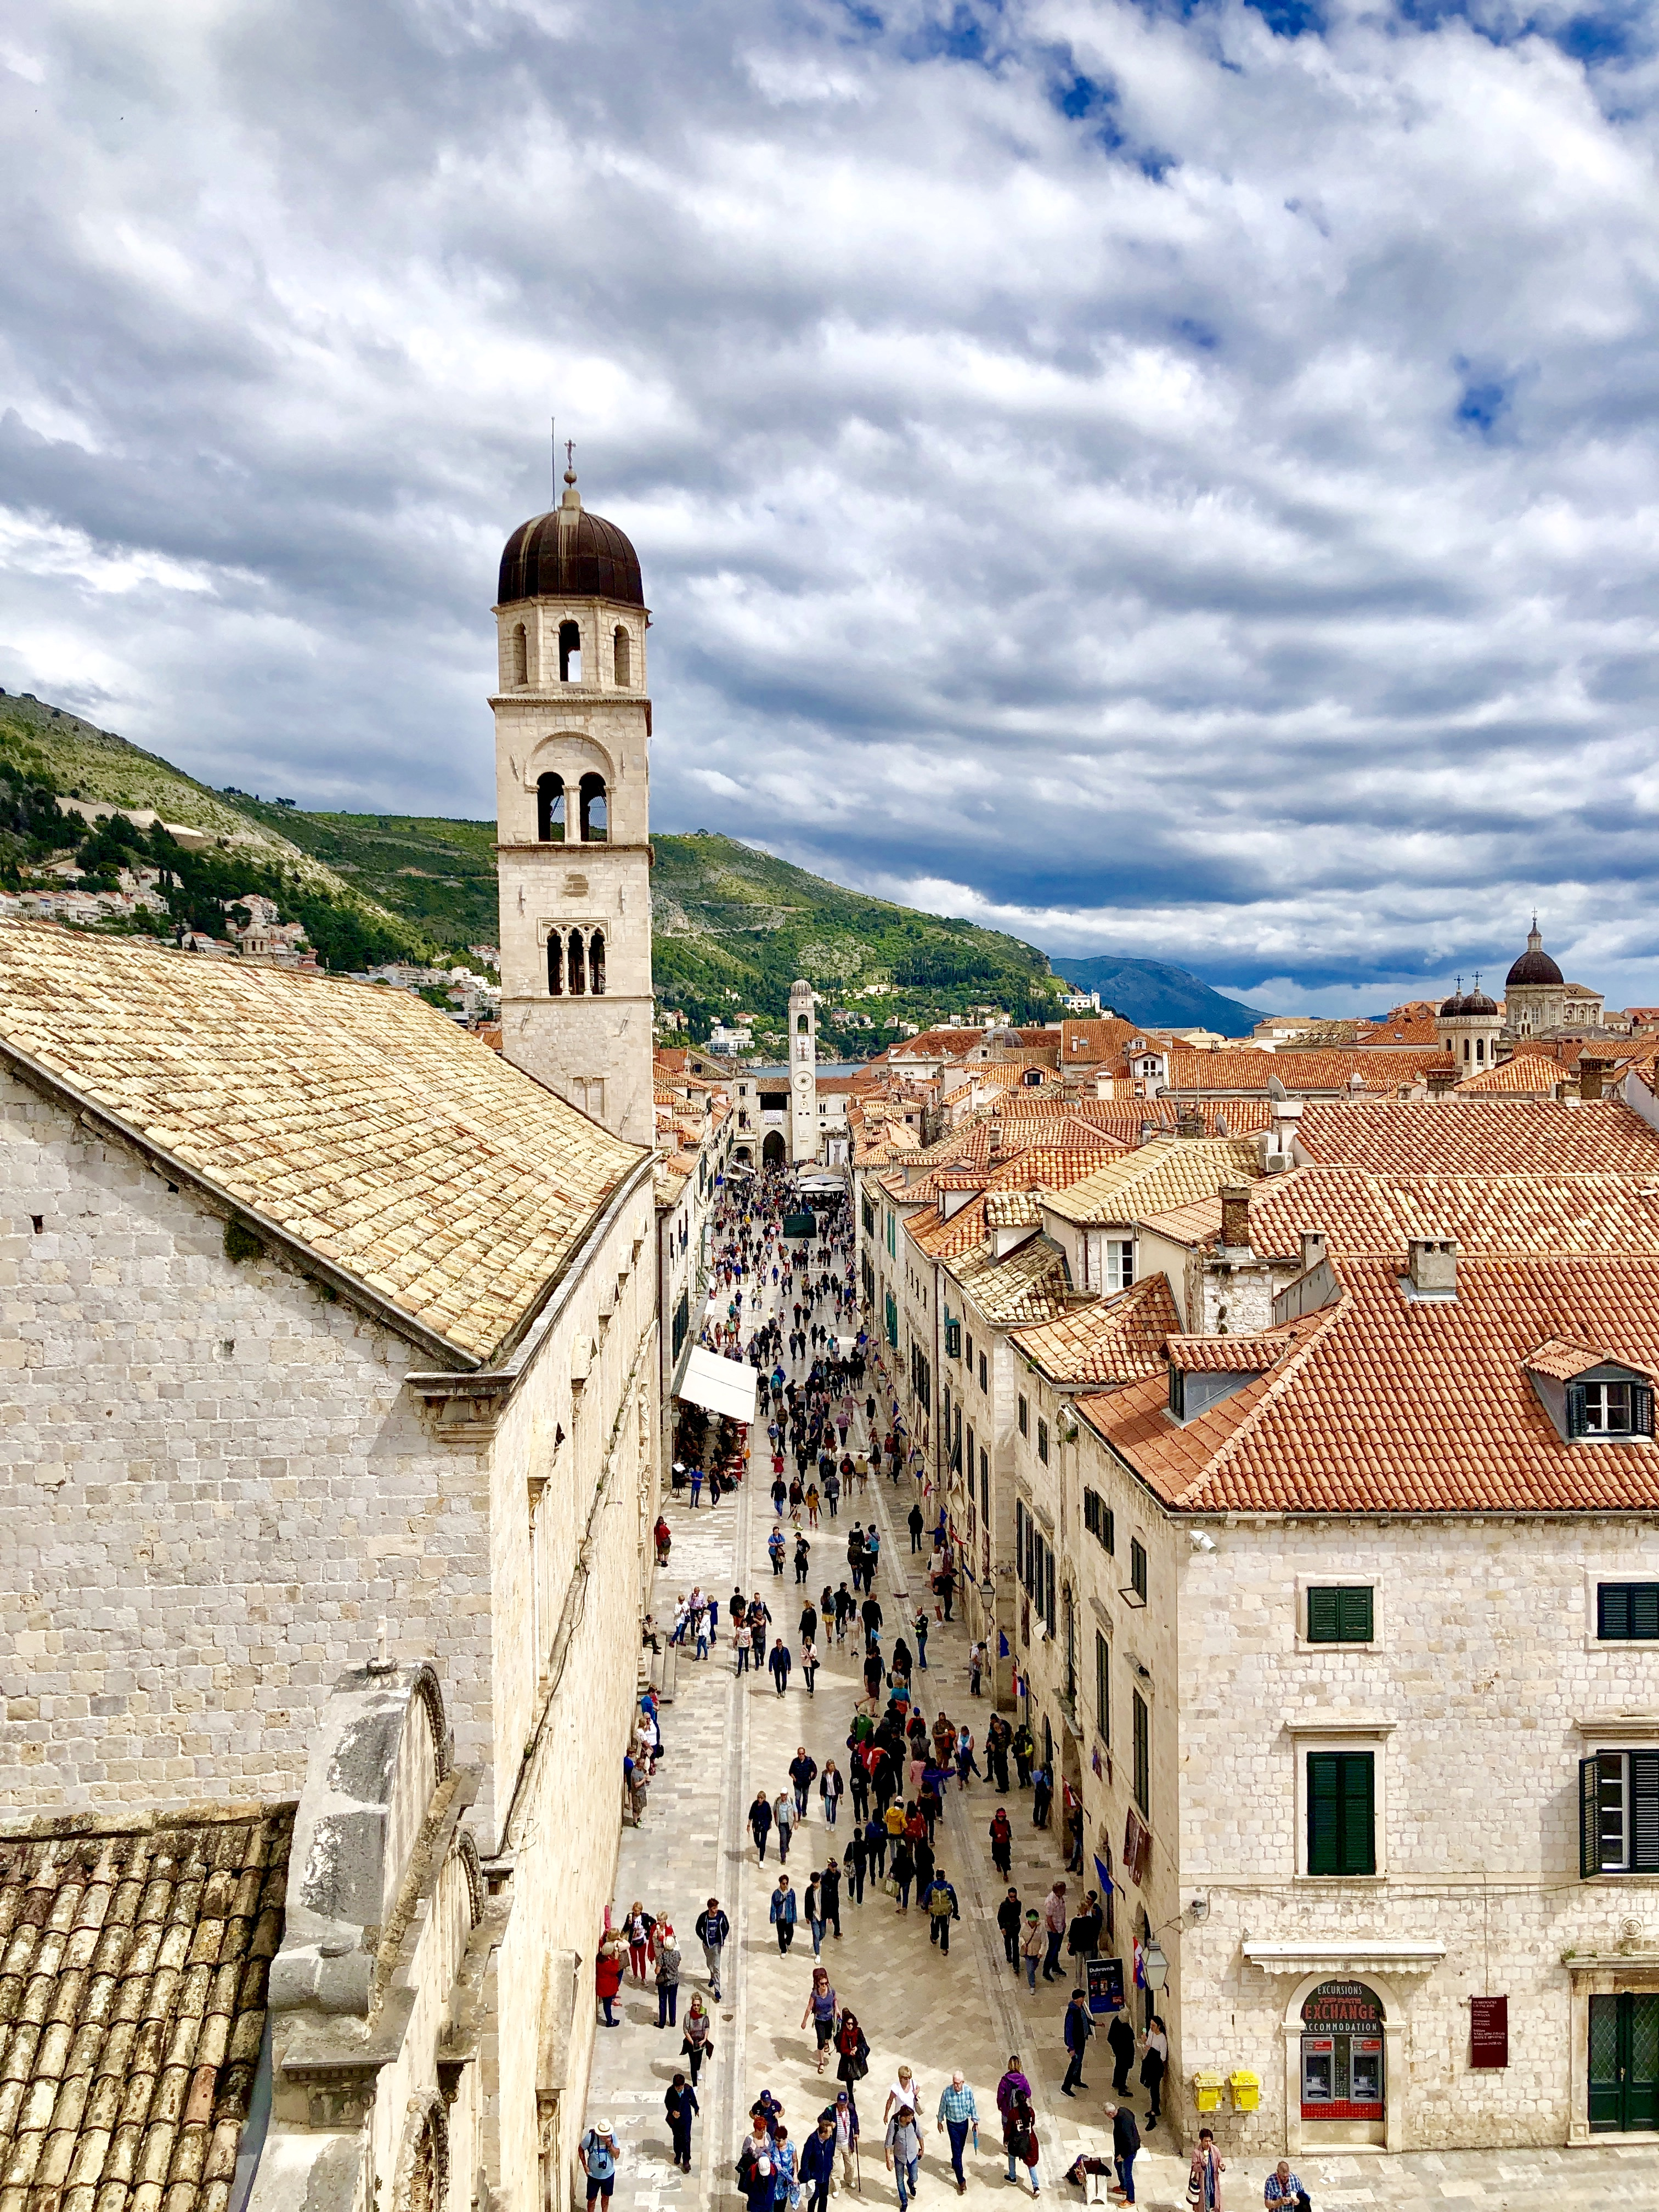 Tracy Dunn's top 12 things to do in Dubrovnik, Croatia - walking the Placa - great people watching, shops, and cafes.  Walking at night is beautiful too.